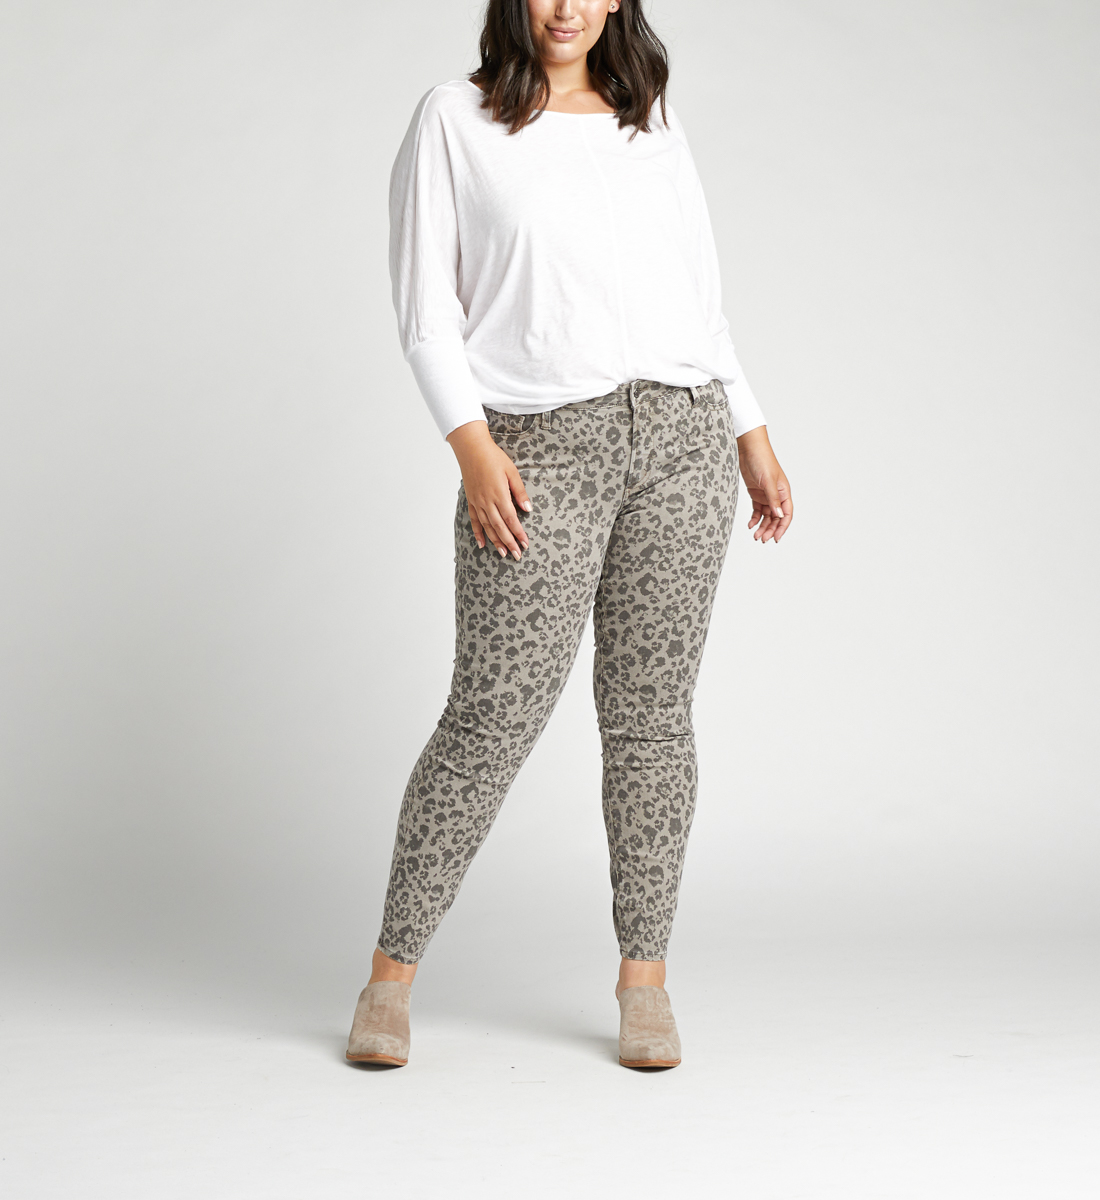 Most Wanted Mid Rise Skinny Plus Size Jeans,Grey Front